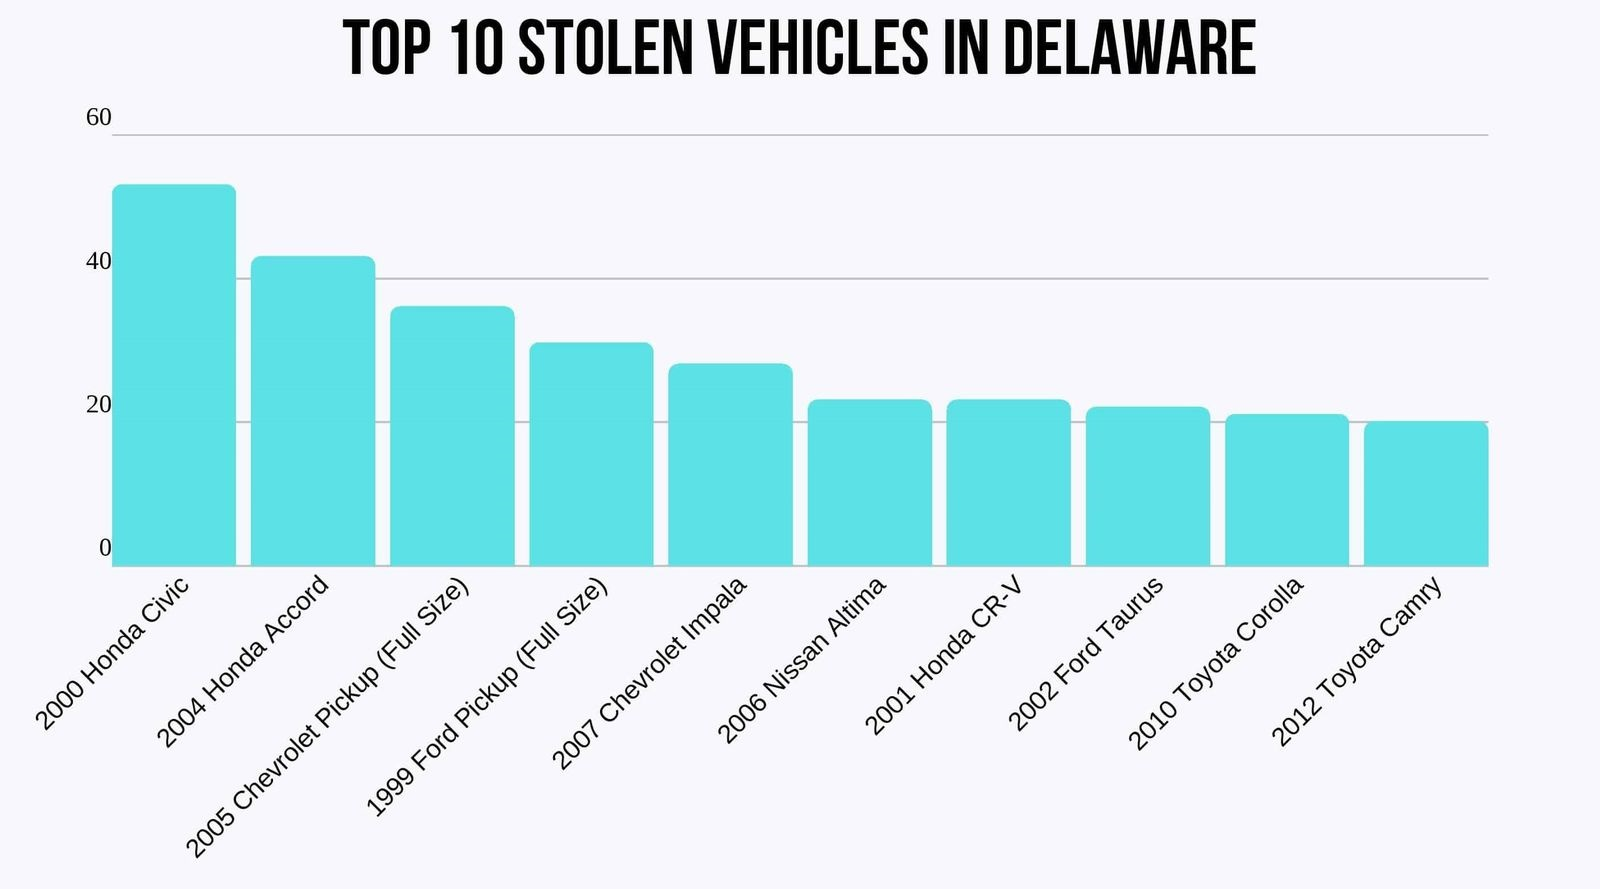 bar chart of the top 10 stolen vehicles in Delaware